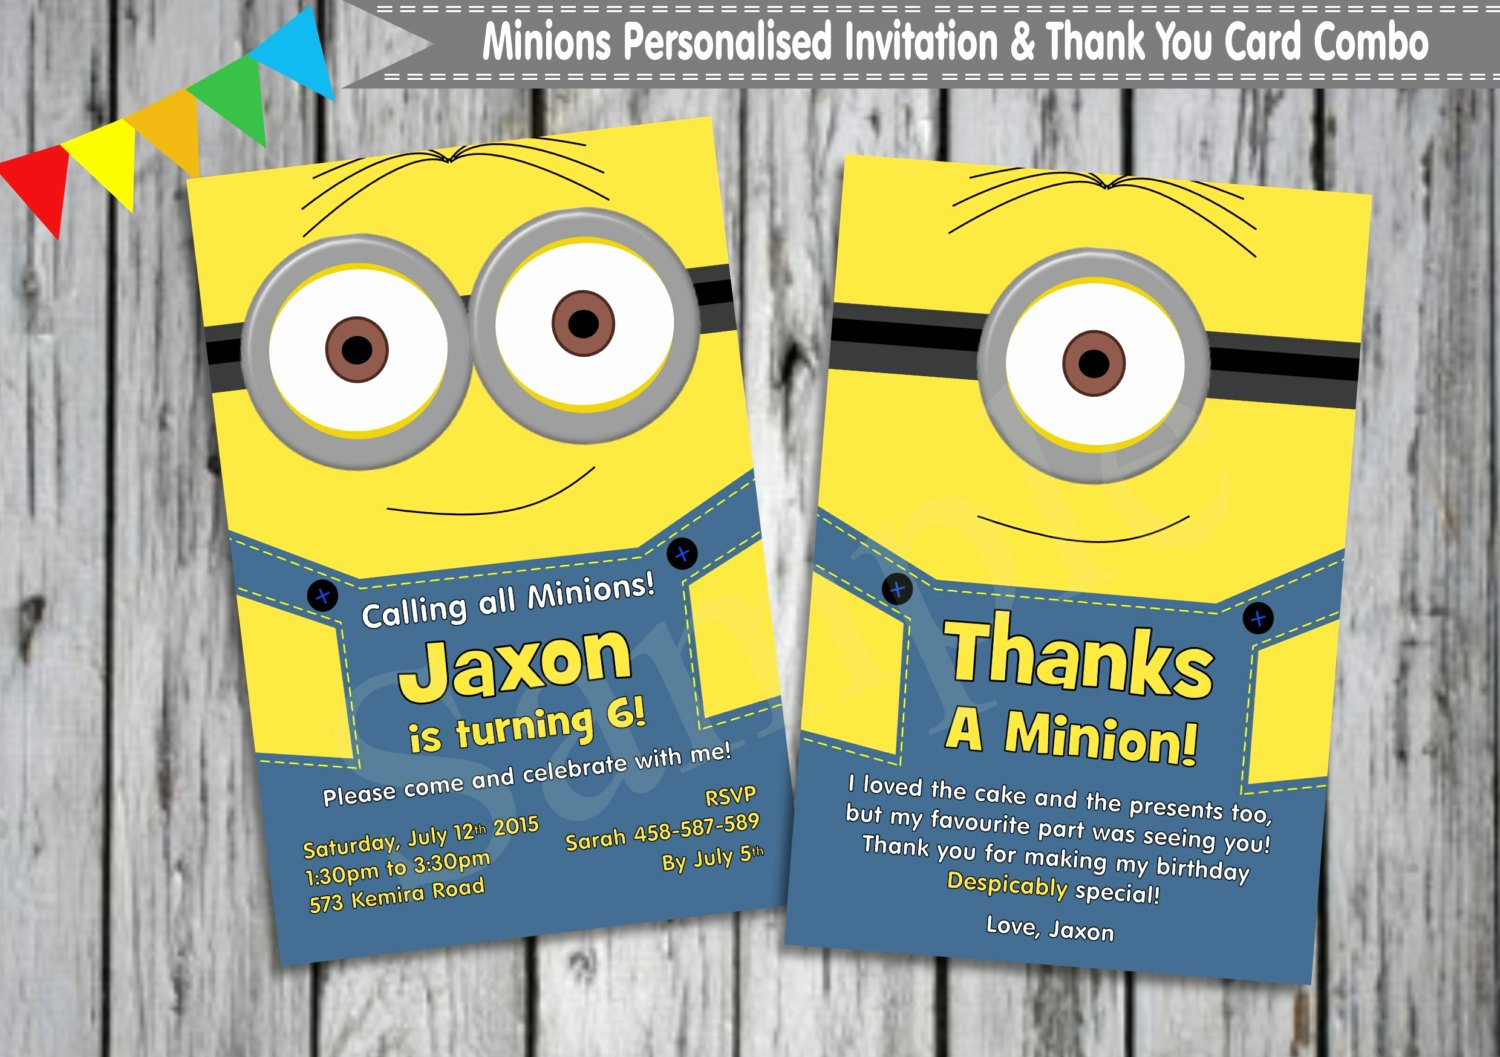 Minions Birthday Card Template Awesome Beautiful Minions Birthday Invitation Card 11 Awesome